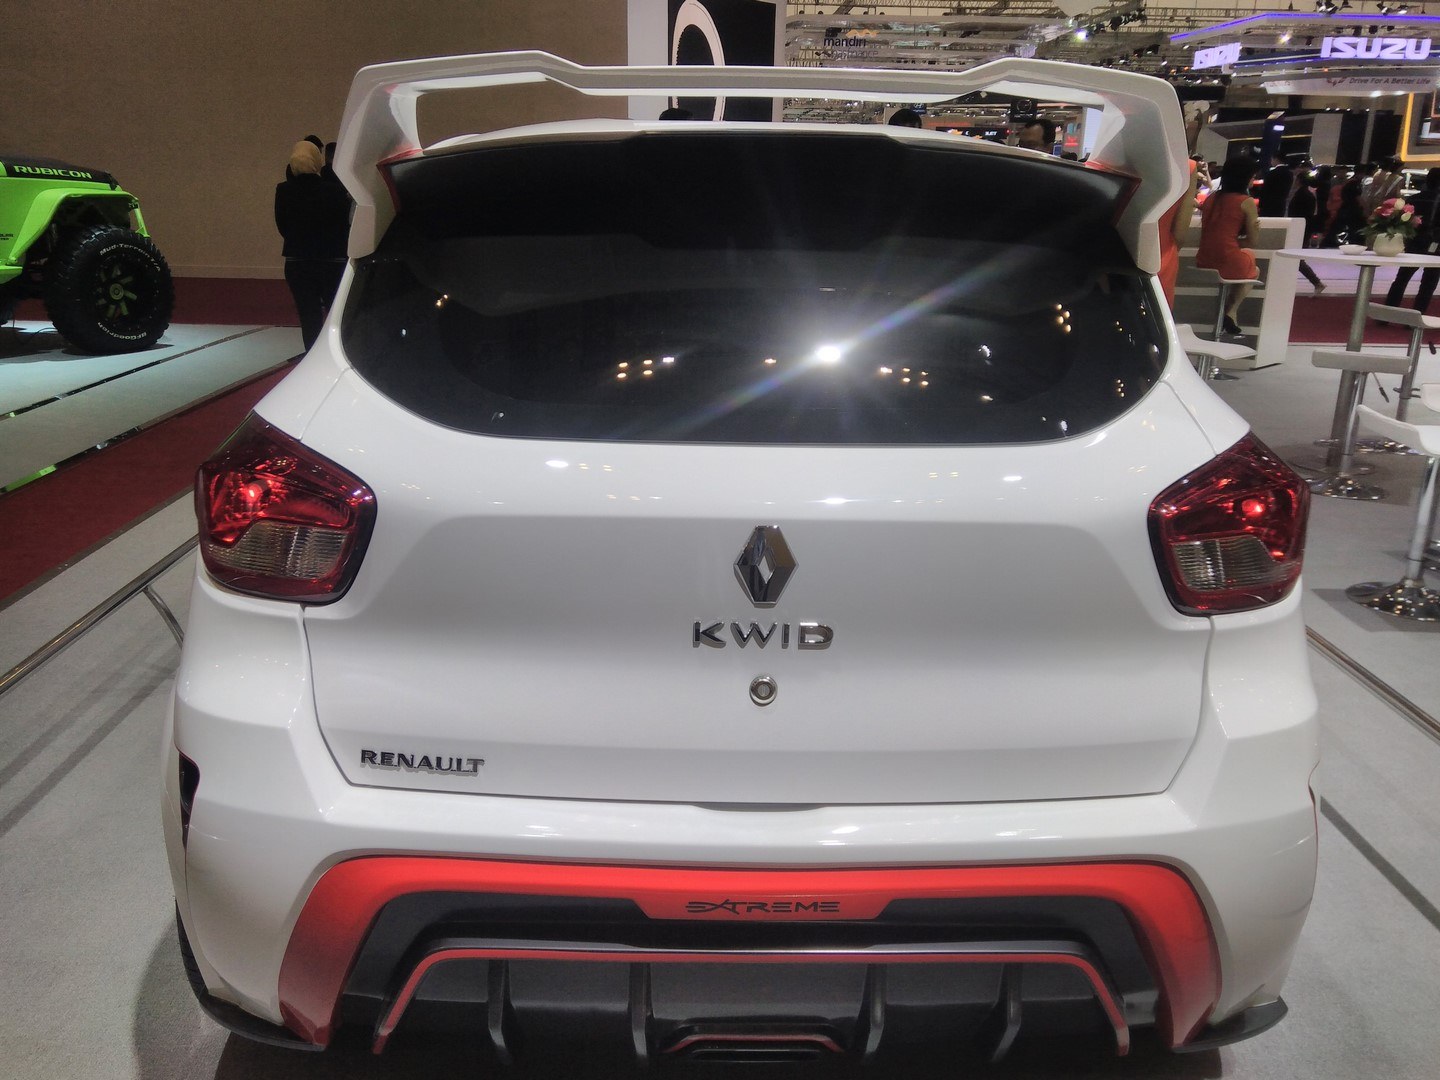 Index Of Wp Contentgallery2017renault Kwid Extreme Concept